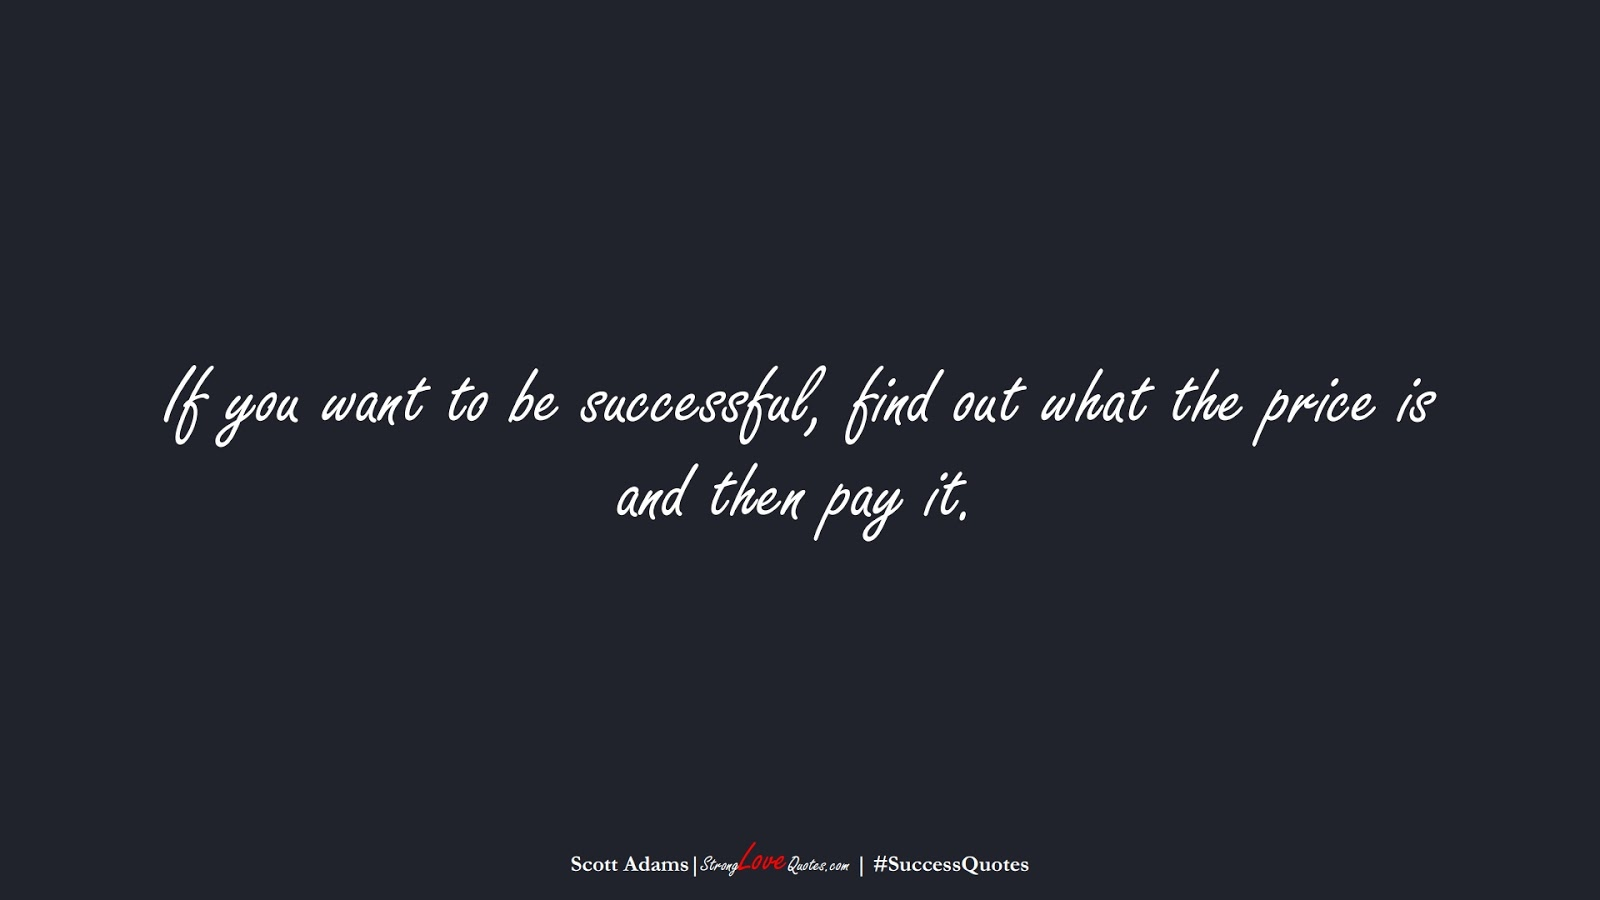 If you want to be successful, find out what the price is and then pay it. (Scott Adams);  #SuccessQuotes